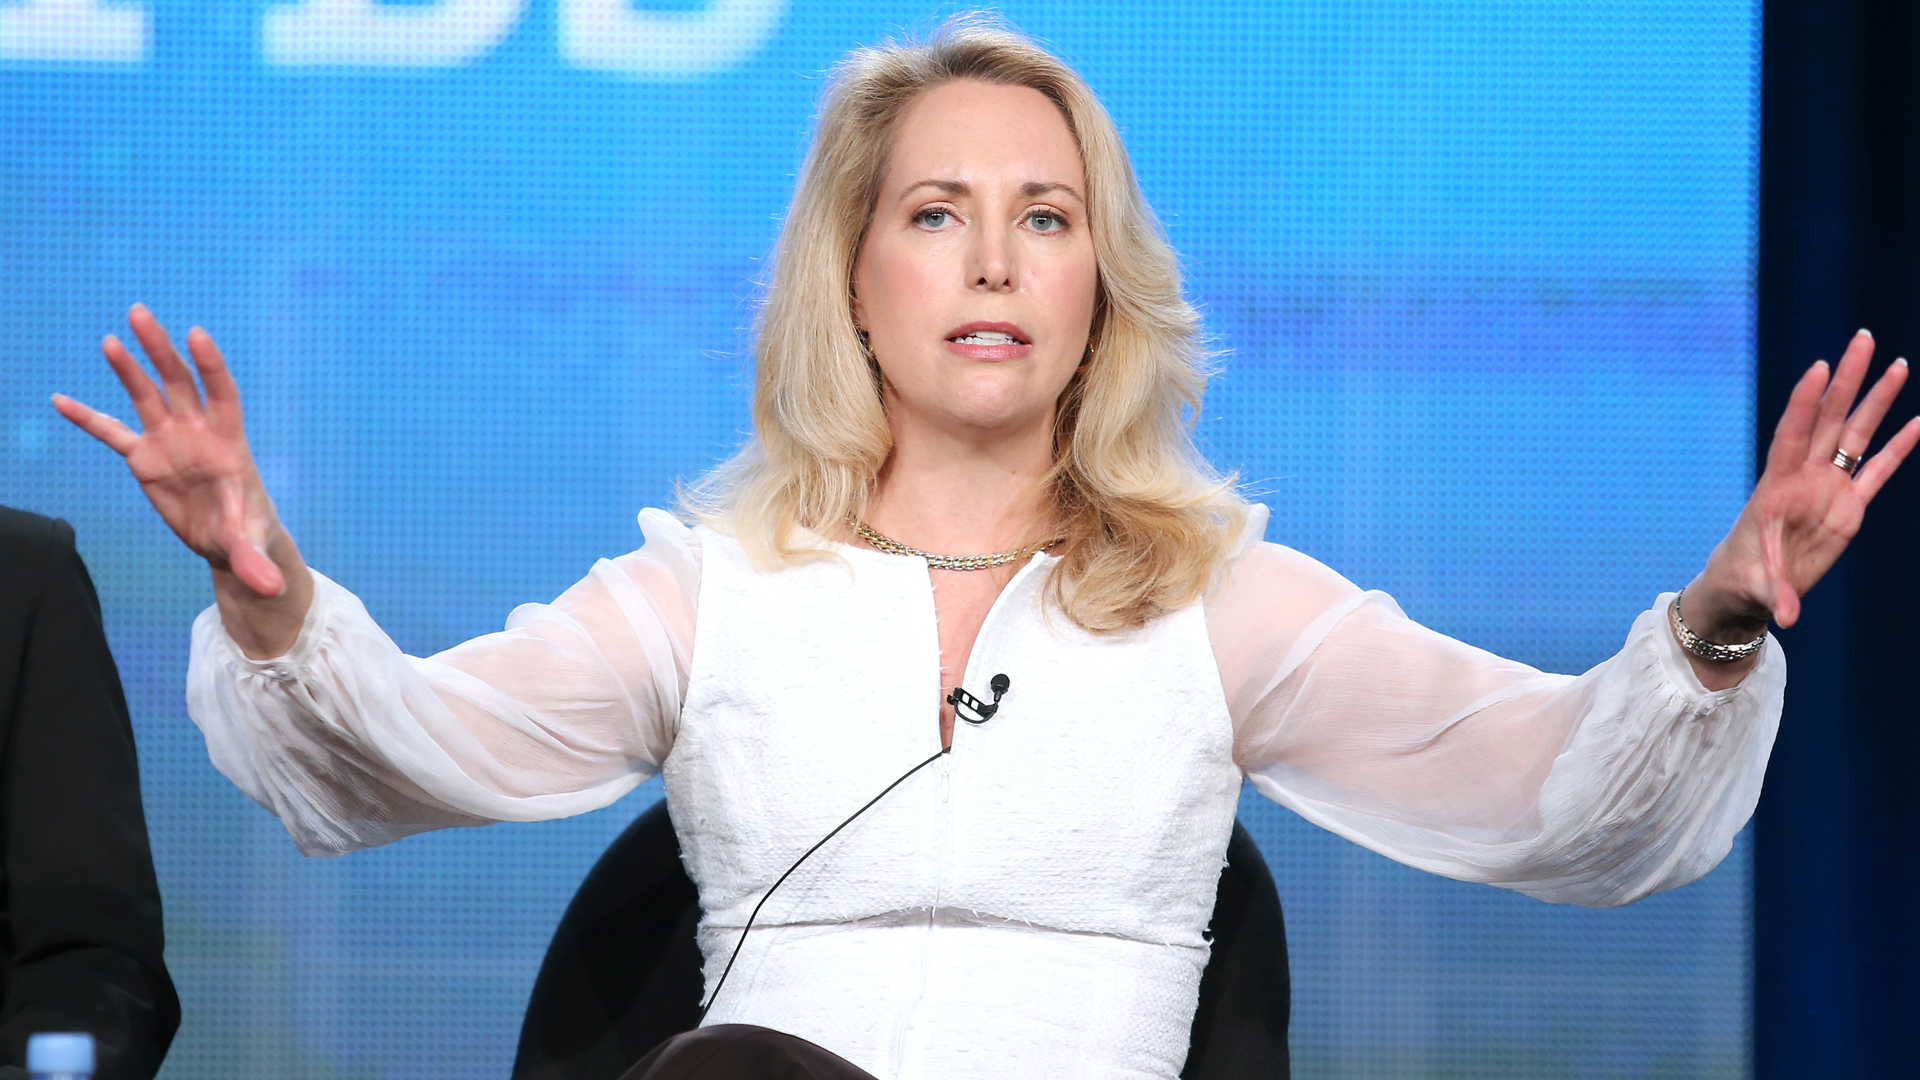 Valerie Plame, author and former CIA operations officer, speaks onstage during an event at the Langham Hotel on January at Langham Hotel in Pasadena on Jan. 22, 2014. (Credit: Frederick M. Brown/Getty Images)